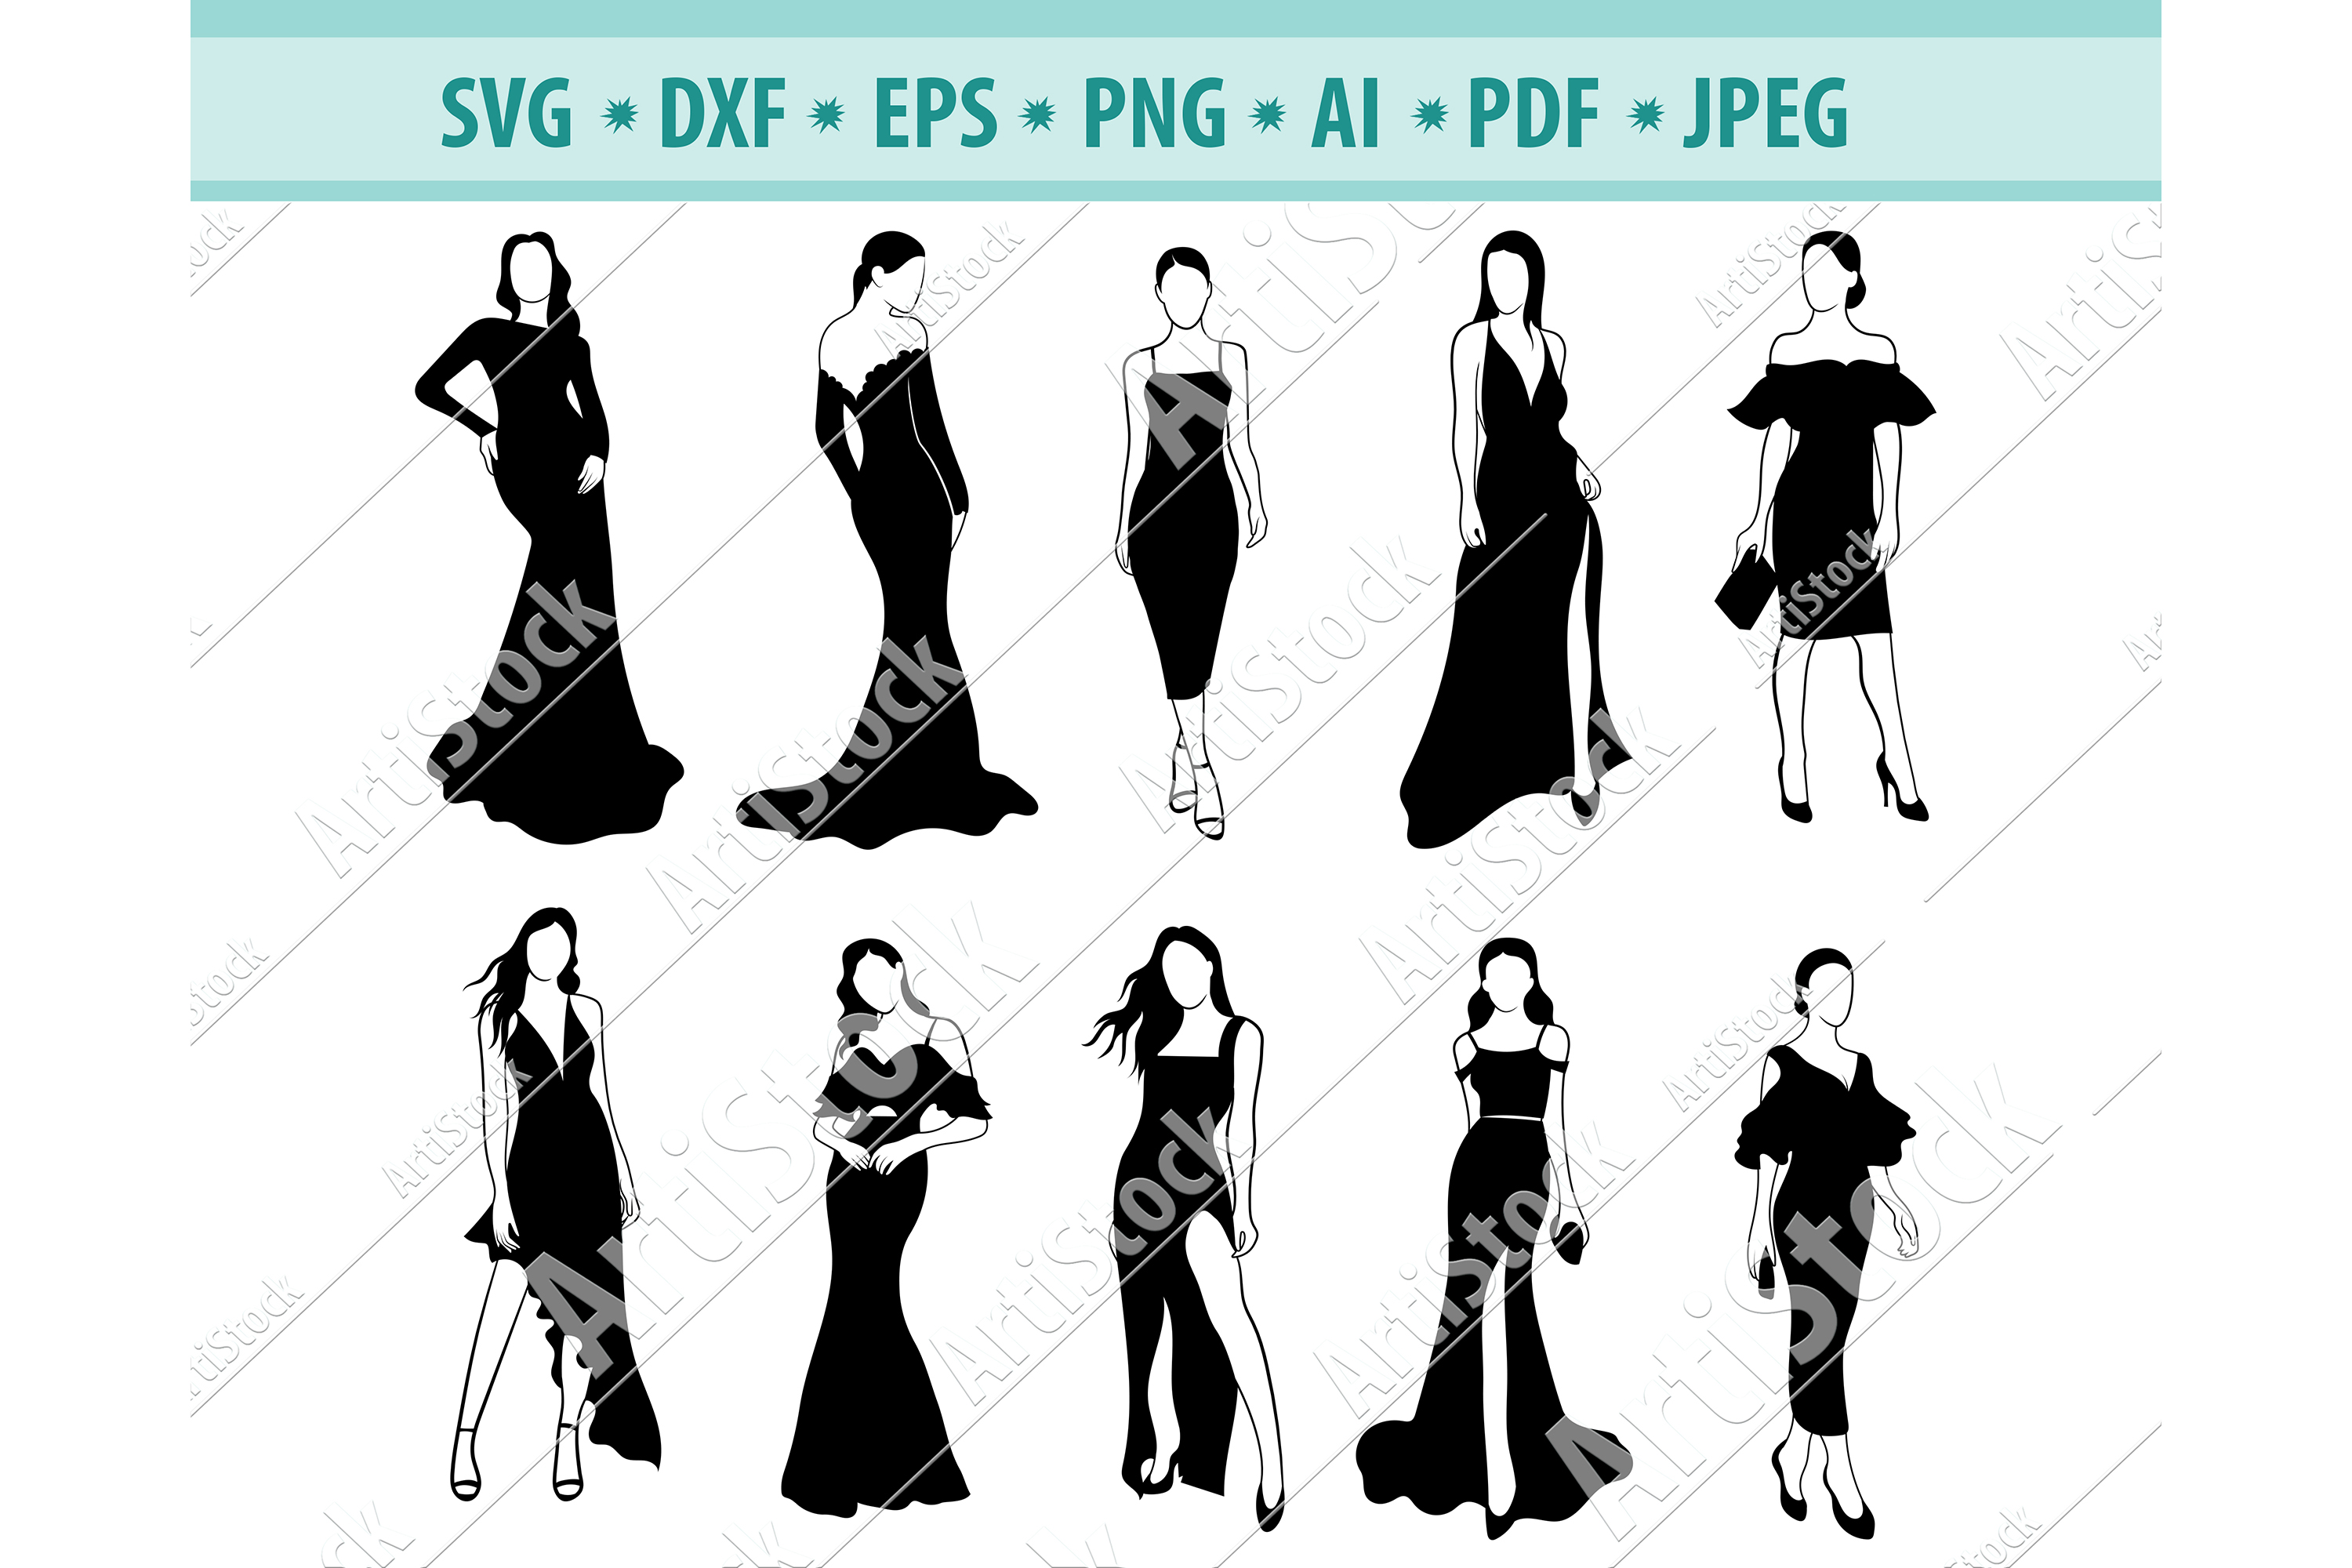 Woman SVG, Retro SVG, Fashion dress, Girl svg, Dxf, Png, Eps example image 1